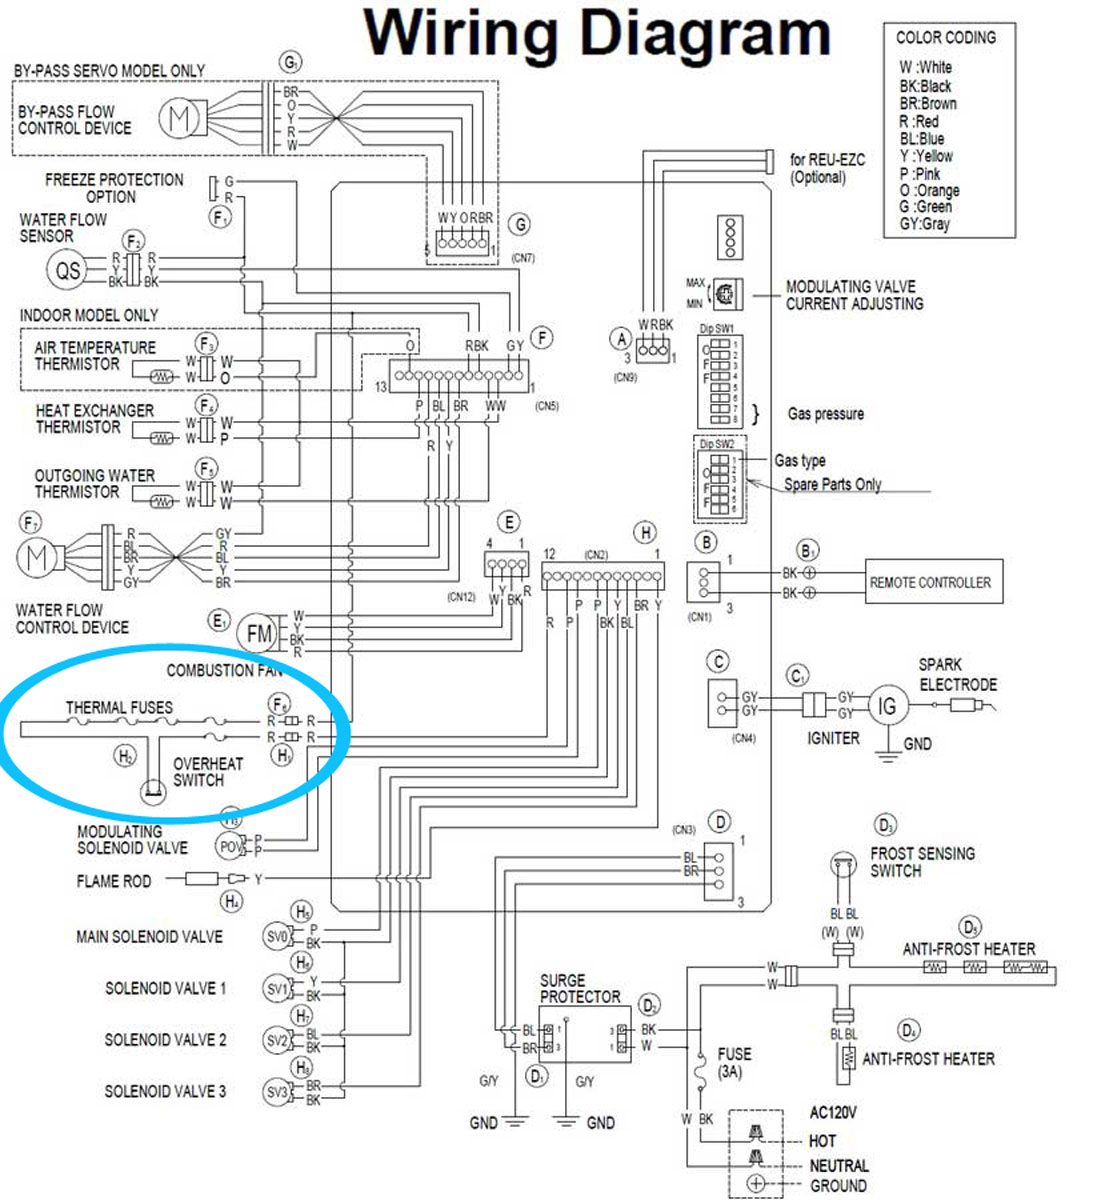 2008 hyundai santa fe wiring diagram 2001 subaru forester rheem rte 13 manual e booksrte 1 troubleshoot tankless water